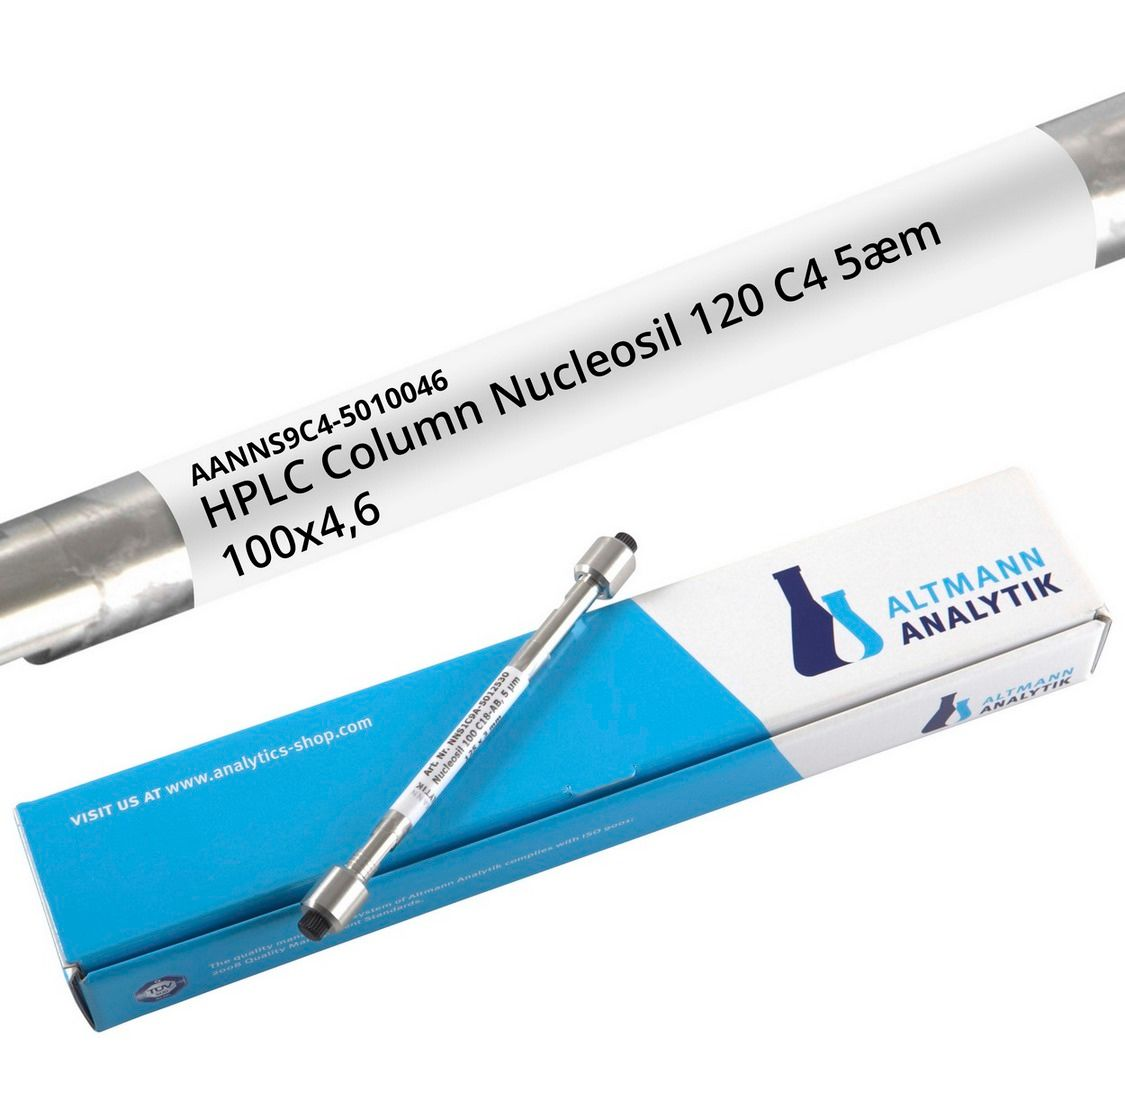 HPLC Column Nucleosil 120 C4 5µm 100x4,6 mm, 120A